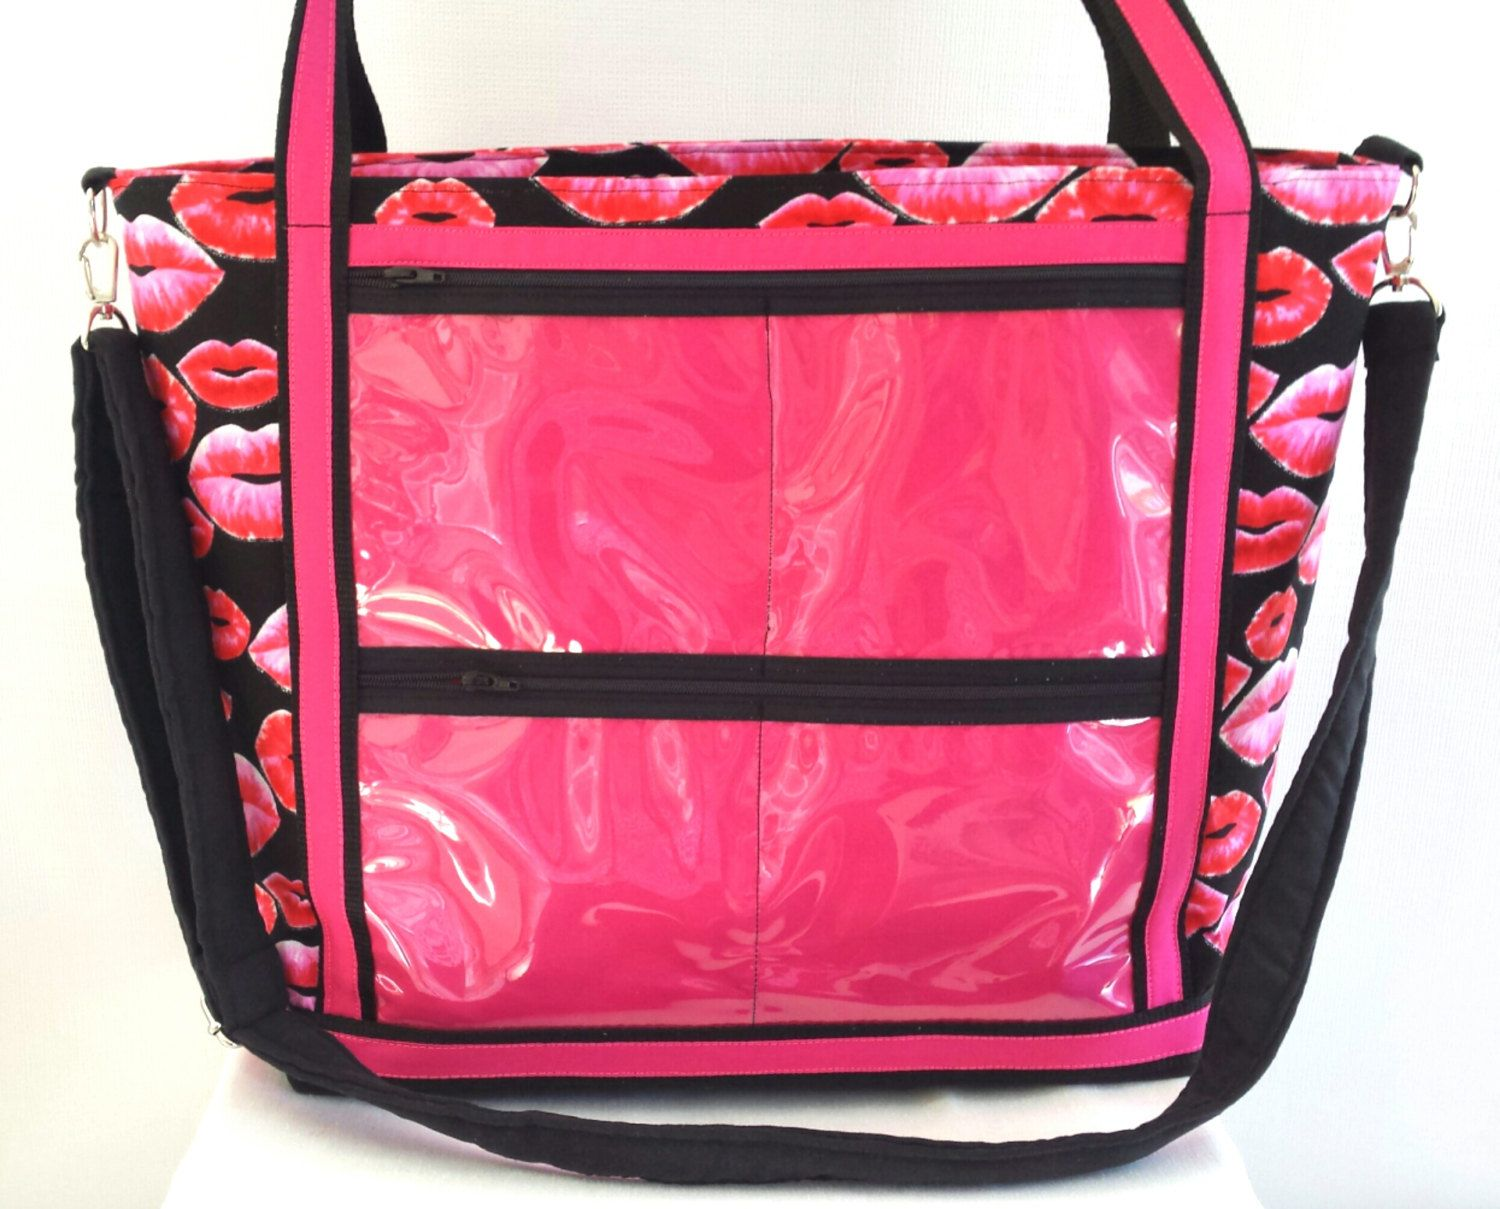 Lipsense custom consultant display tote bag. clear window